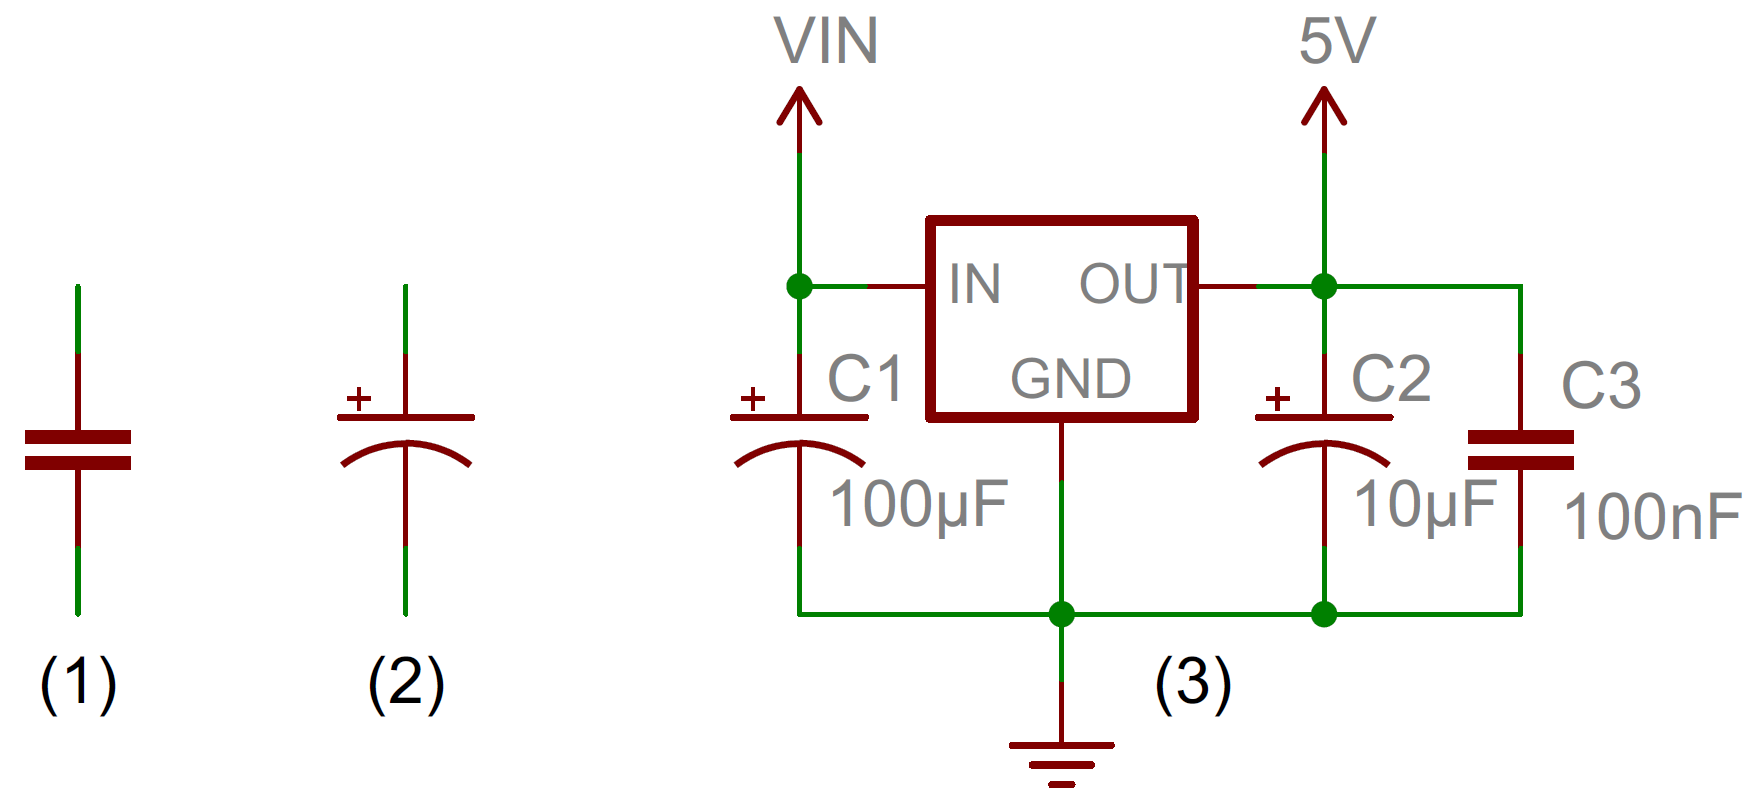 Capacitors Electricity And Circuits Lessons Exercises Practice Tests Capacitor Circuit Symbols